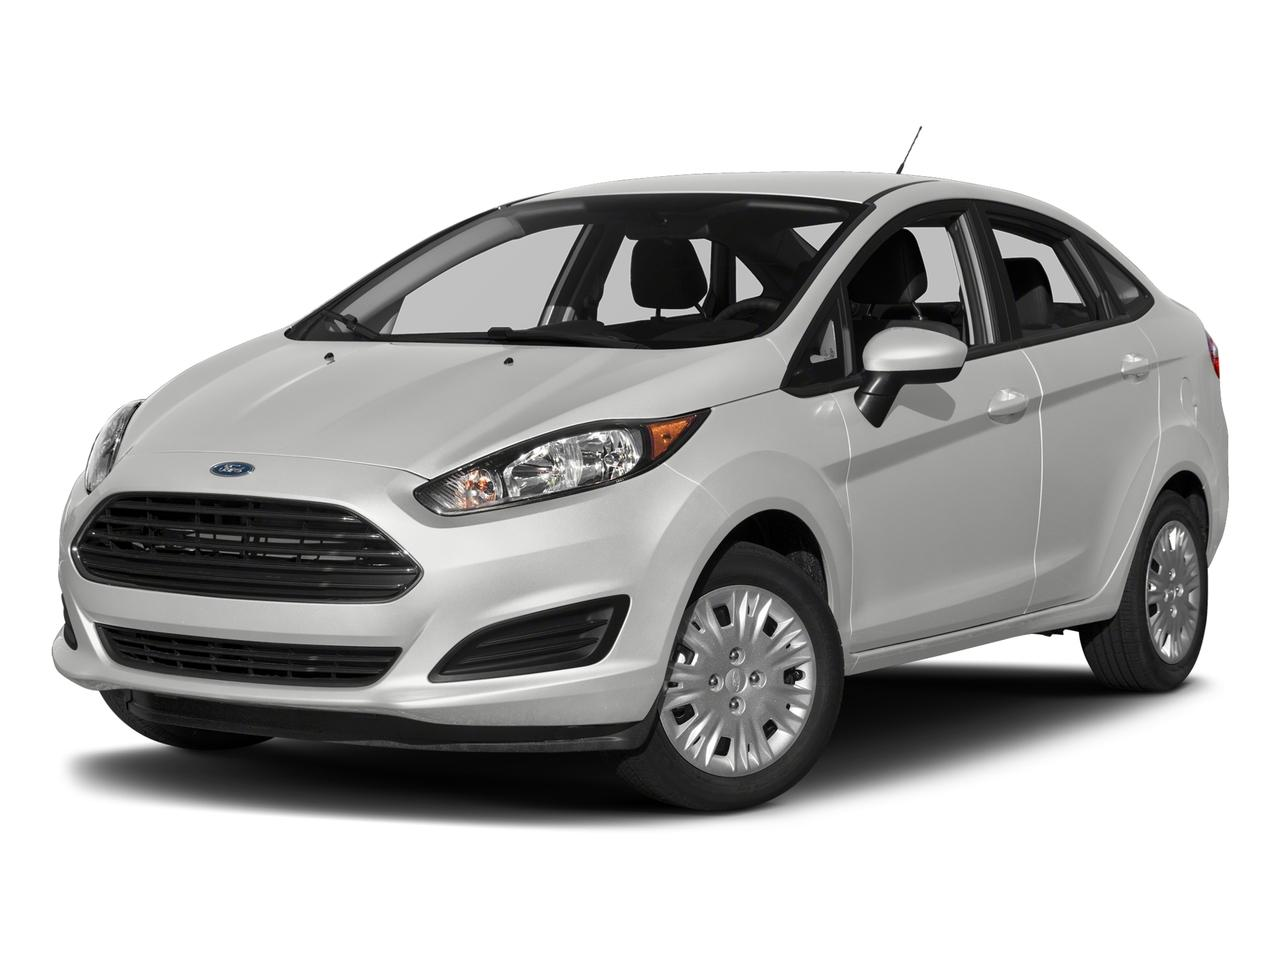 2018 Ford Fiesta Vehicle Photo in Poughkeepsie, NY 12601